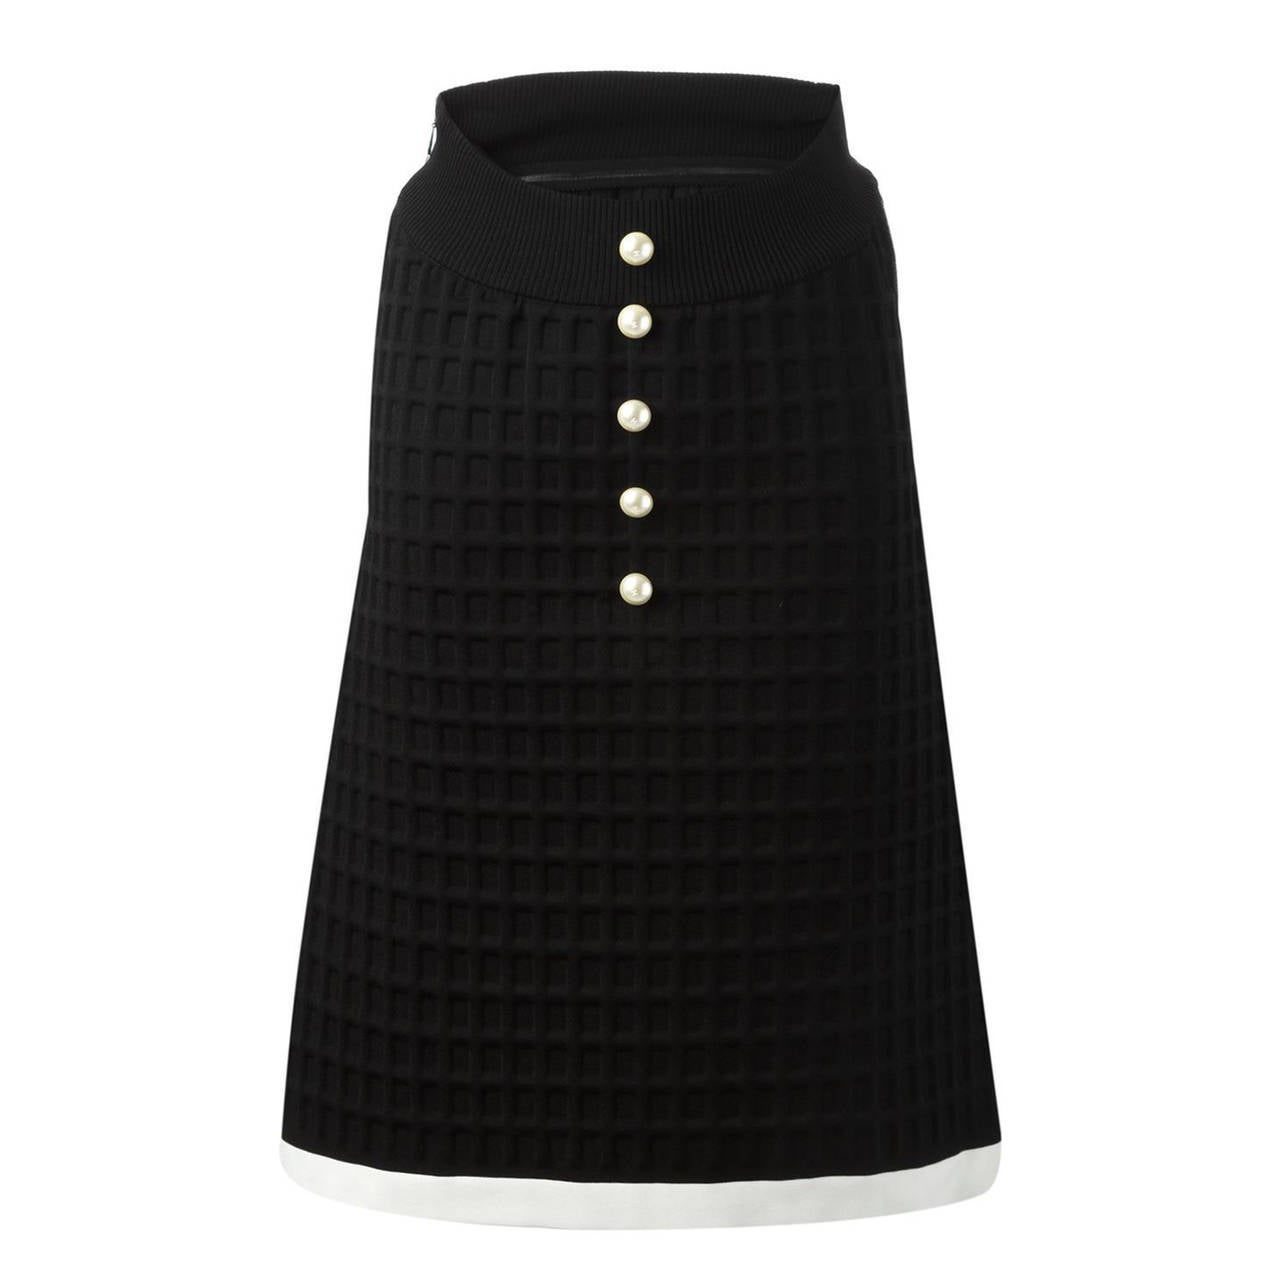 Chanel Neoprene Skirt